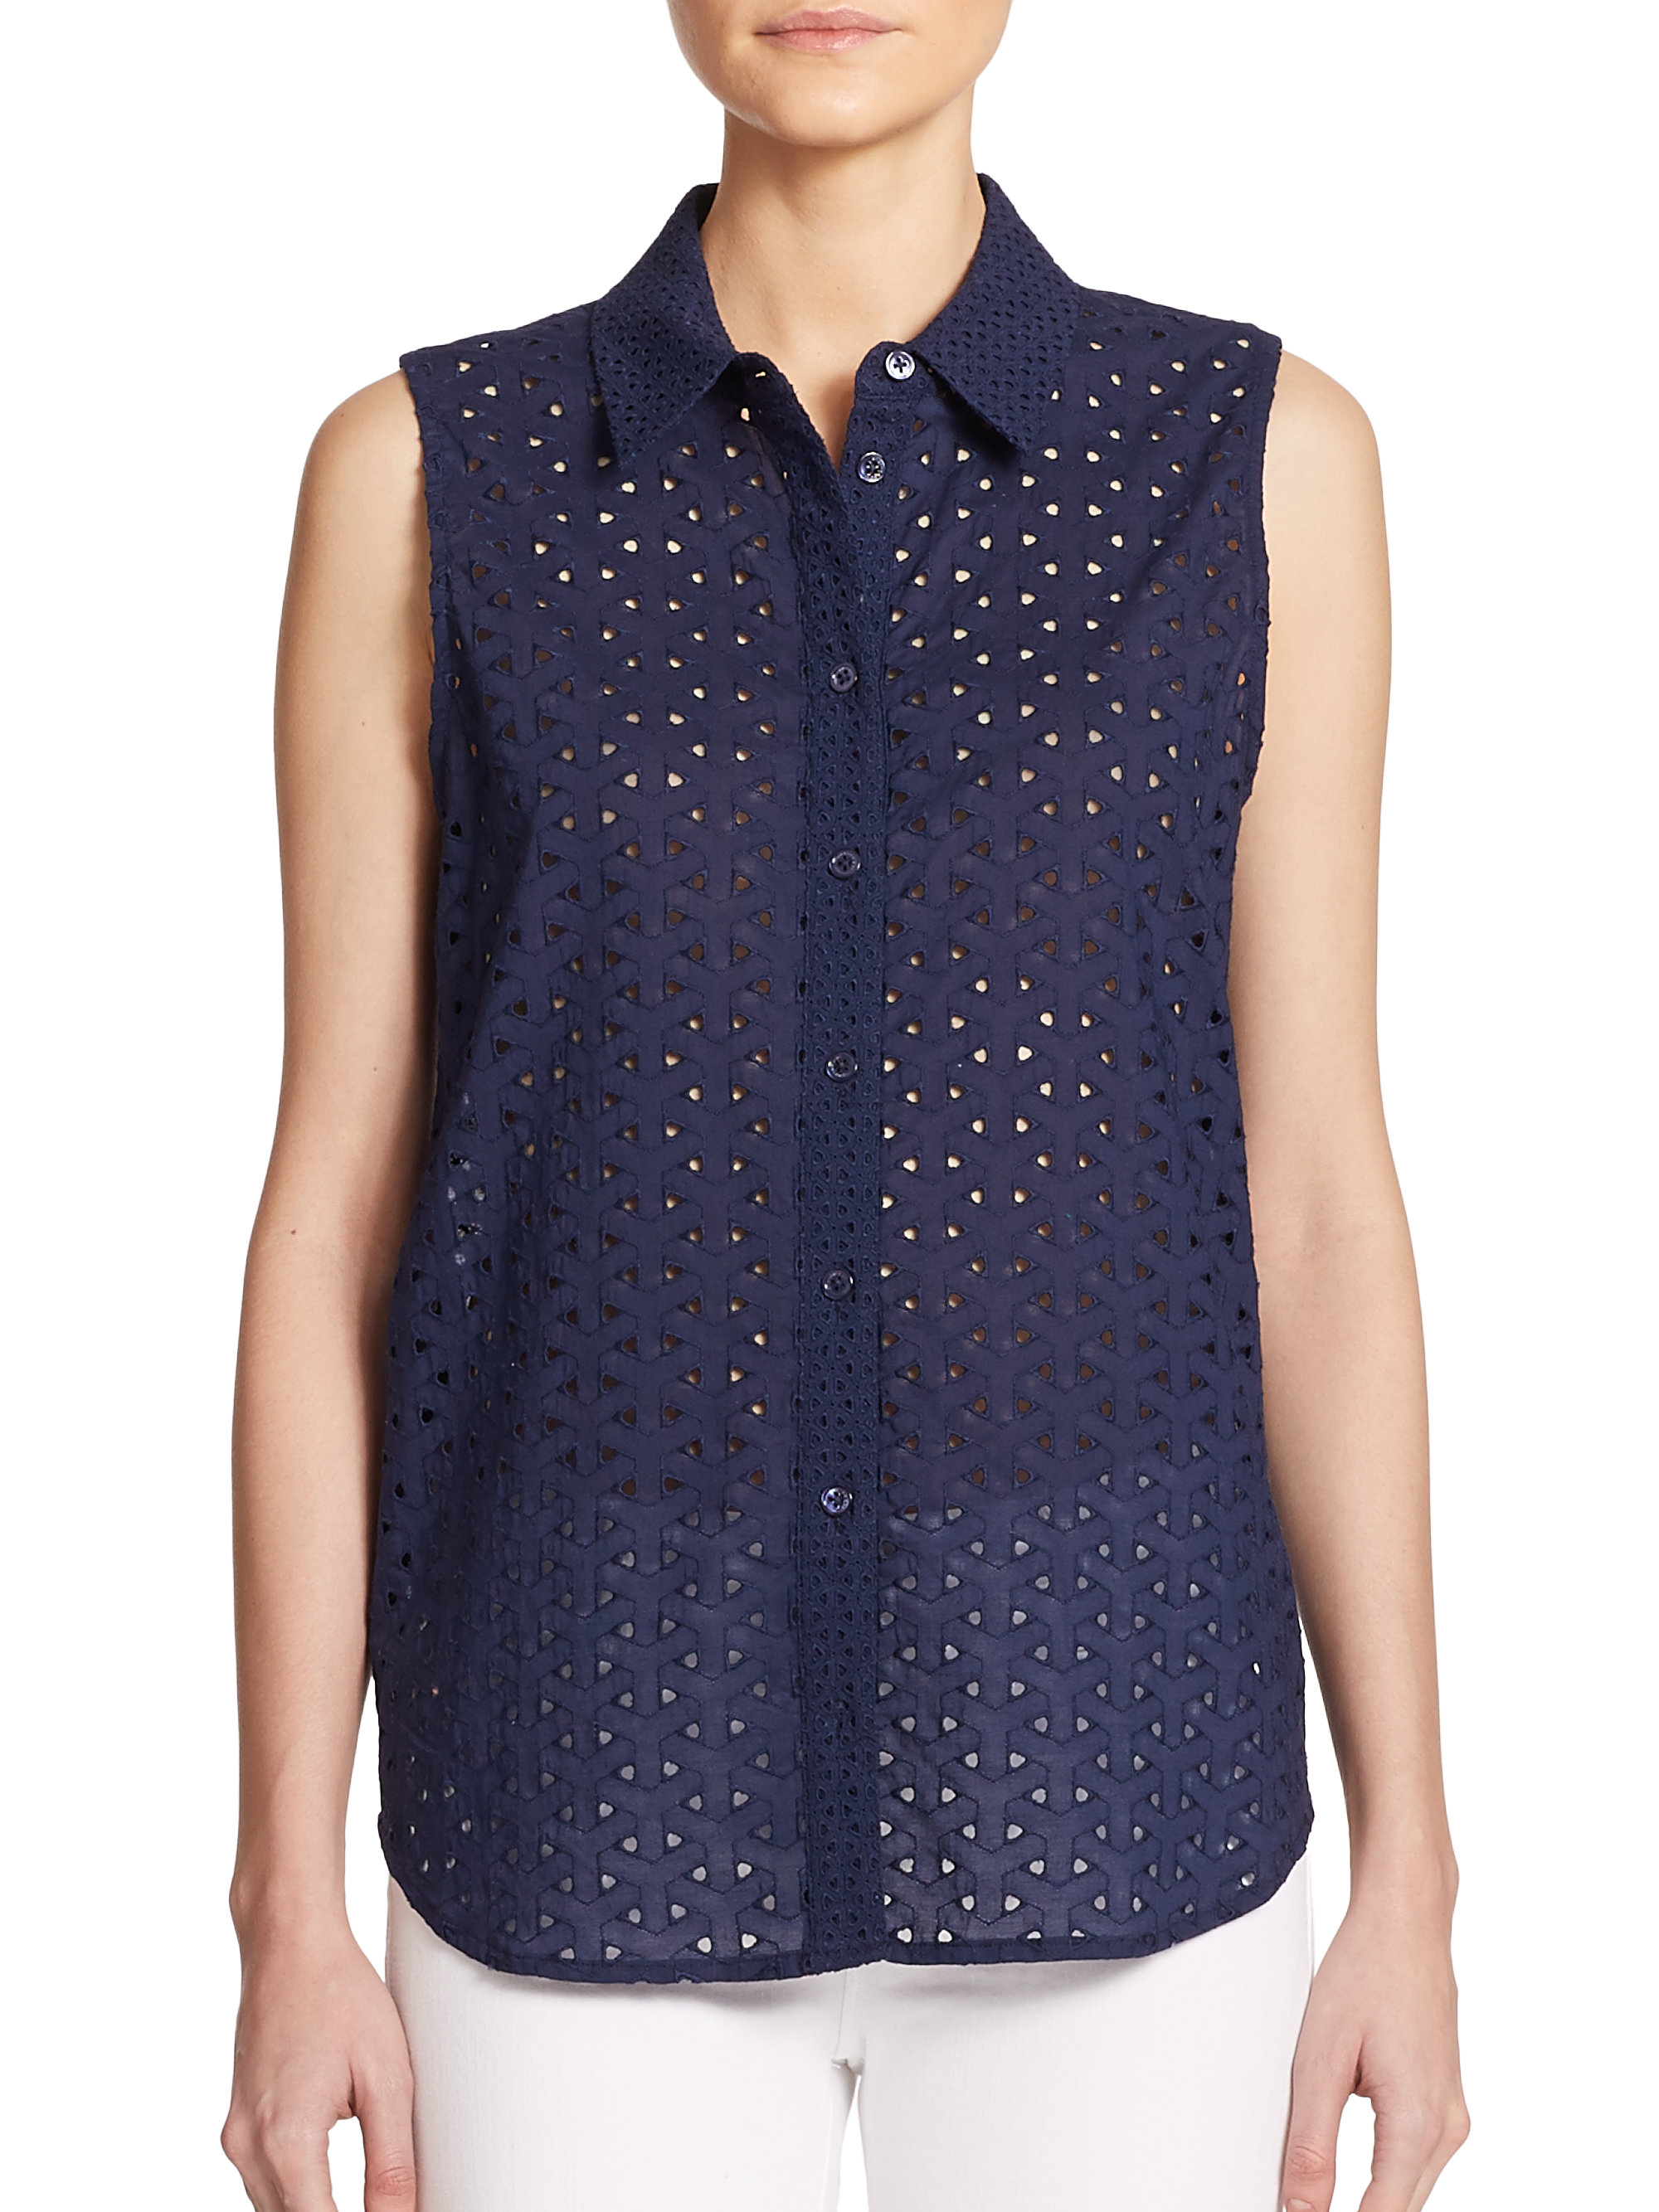 Navy Blue Polka Dot Blouse